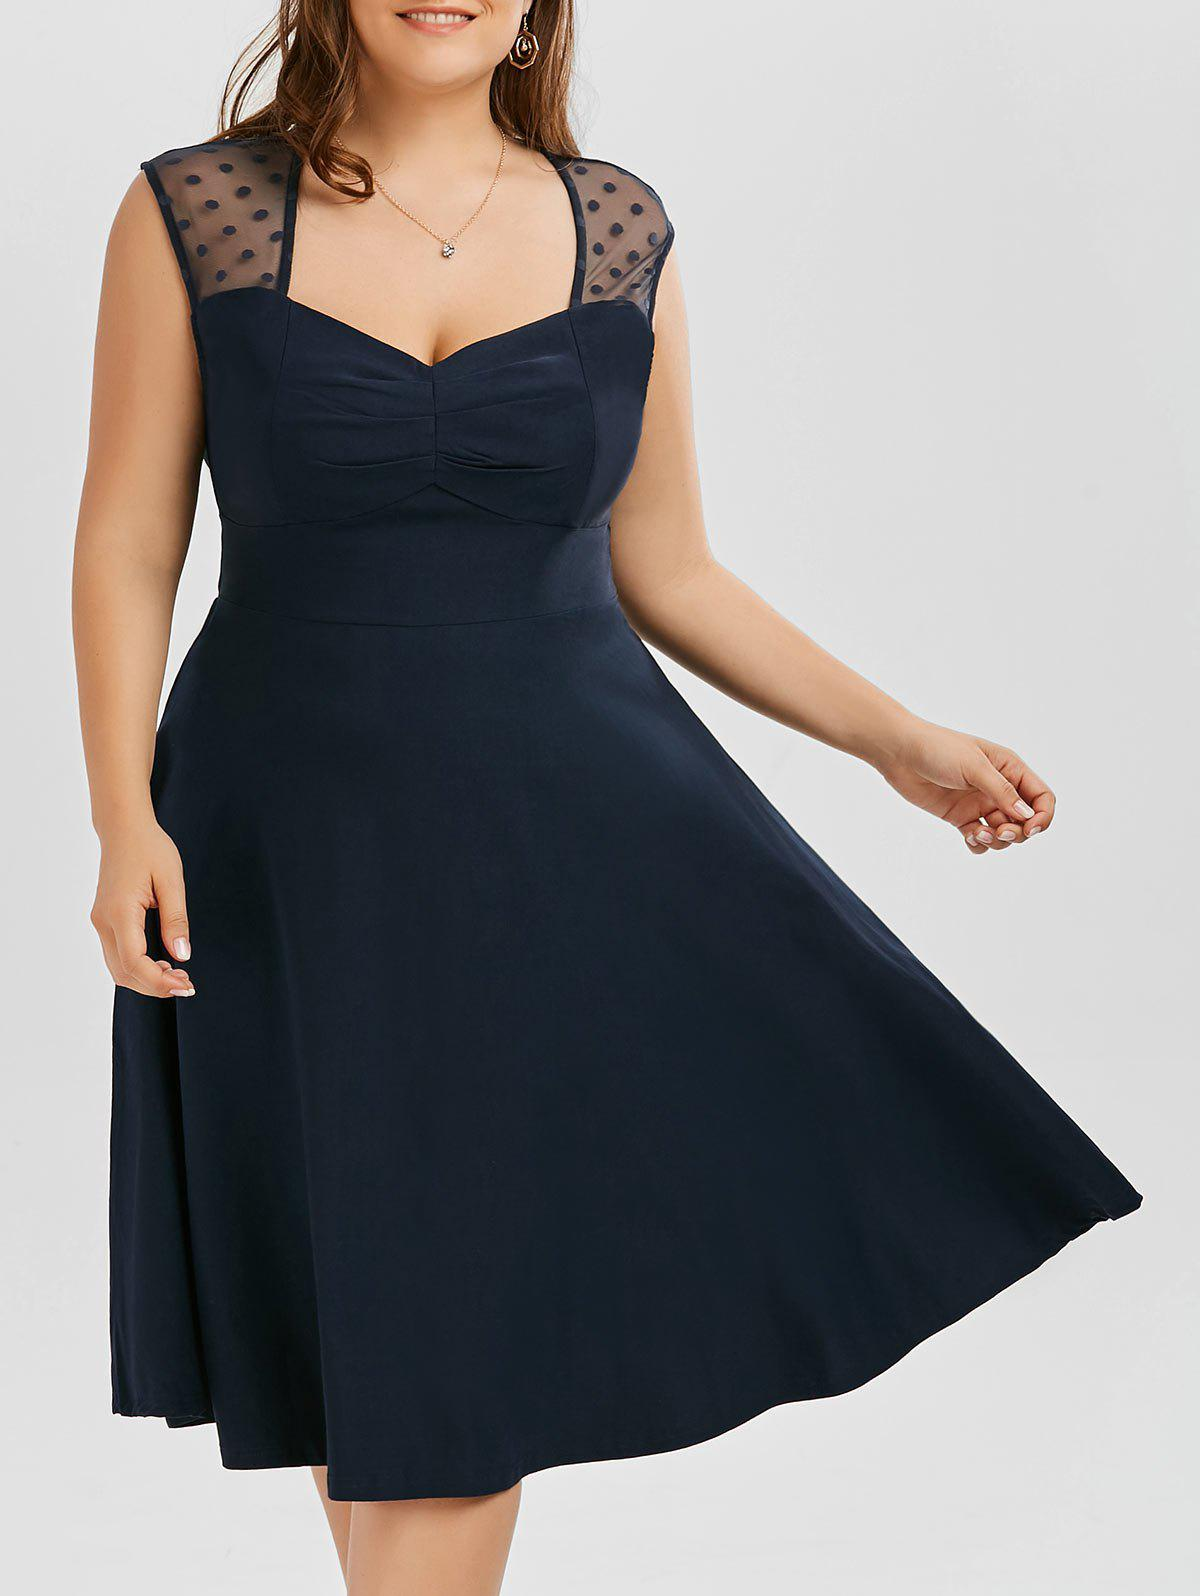 A Line Mesh Trim Plus Size Sweetheart DressWOMEN<br><br>Size: 2XL; Color: PURPLISH BLUE; Style: Brief; Material: Polyester; Silhouette: A-Line; Dresses Length: Knee-Length; Neckline: Sweetheart Neck; Sleeve Length: Sleeveless; Pattern Type: Polka Dot; With Belt: No; Season: Summer; Weight: 0.5200kg; Package Contents: 1 x Dress;